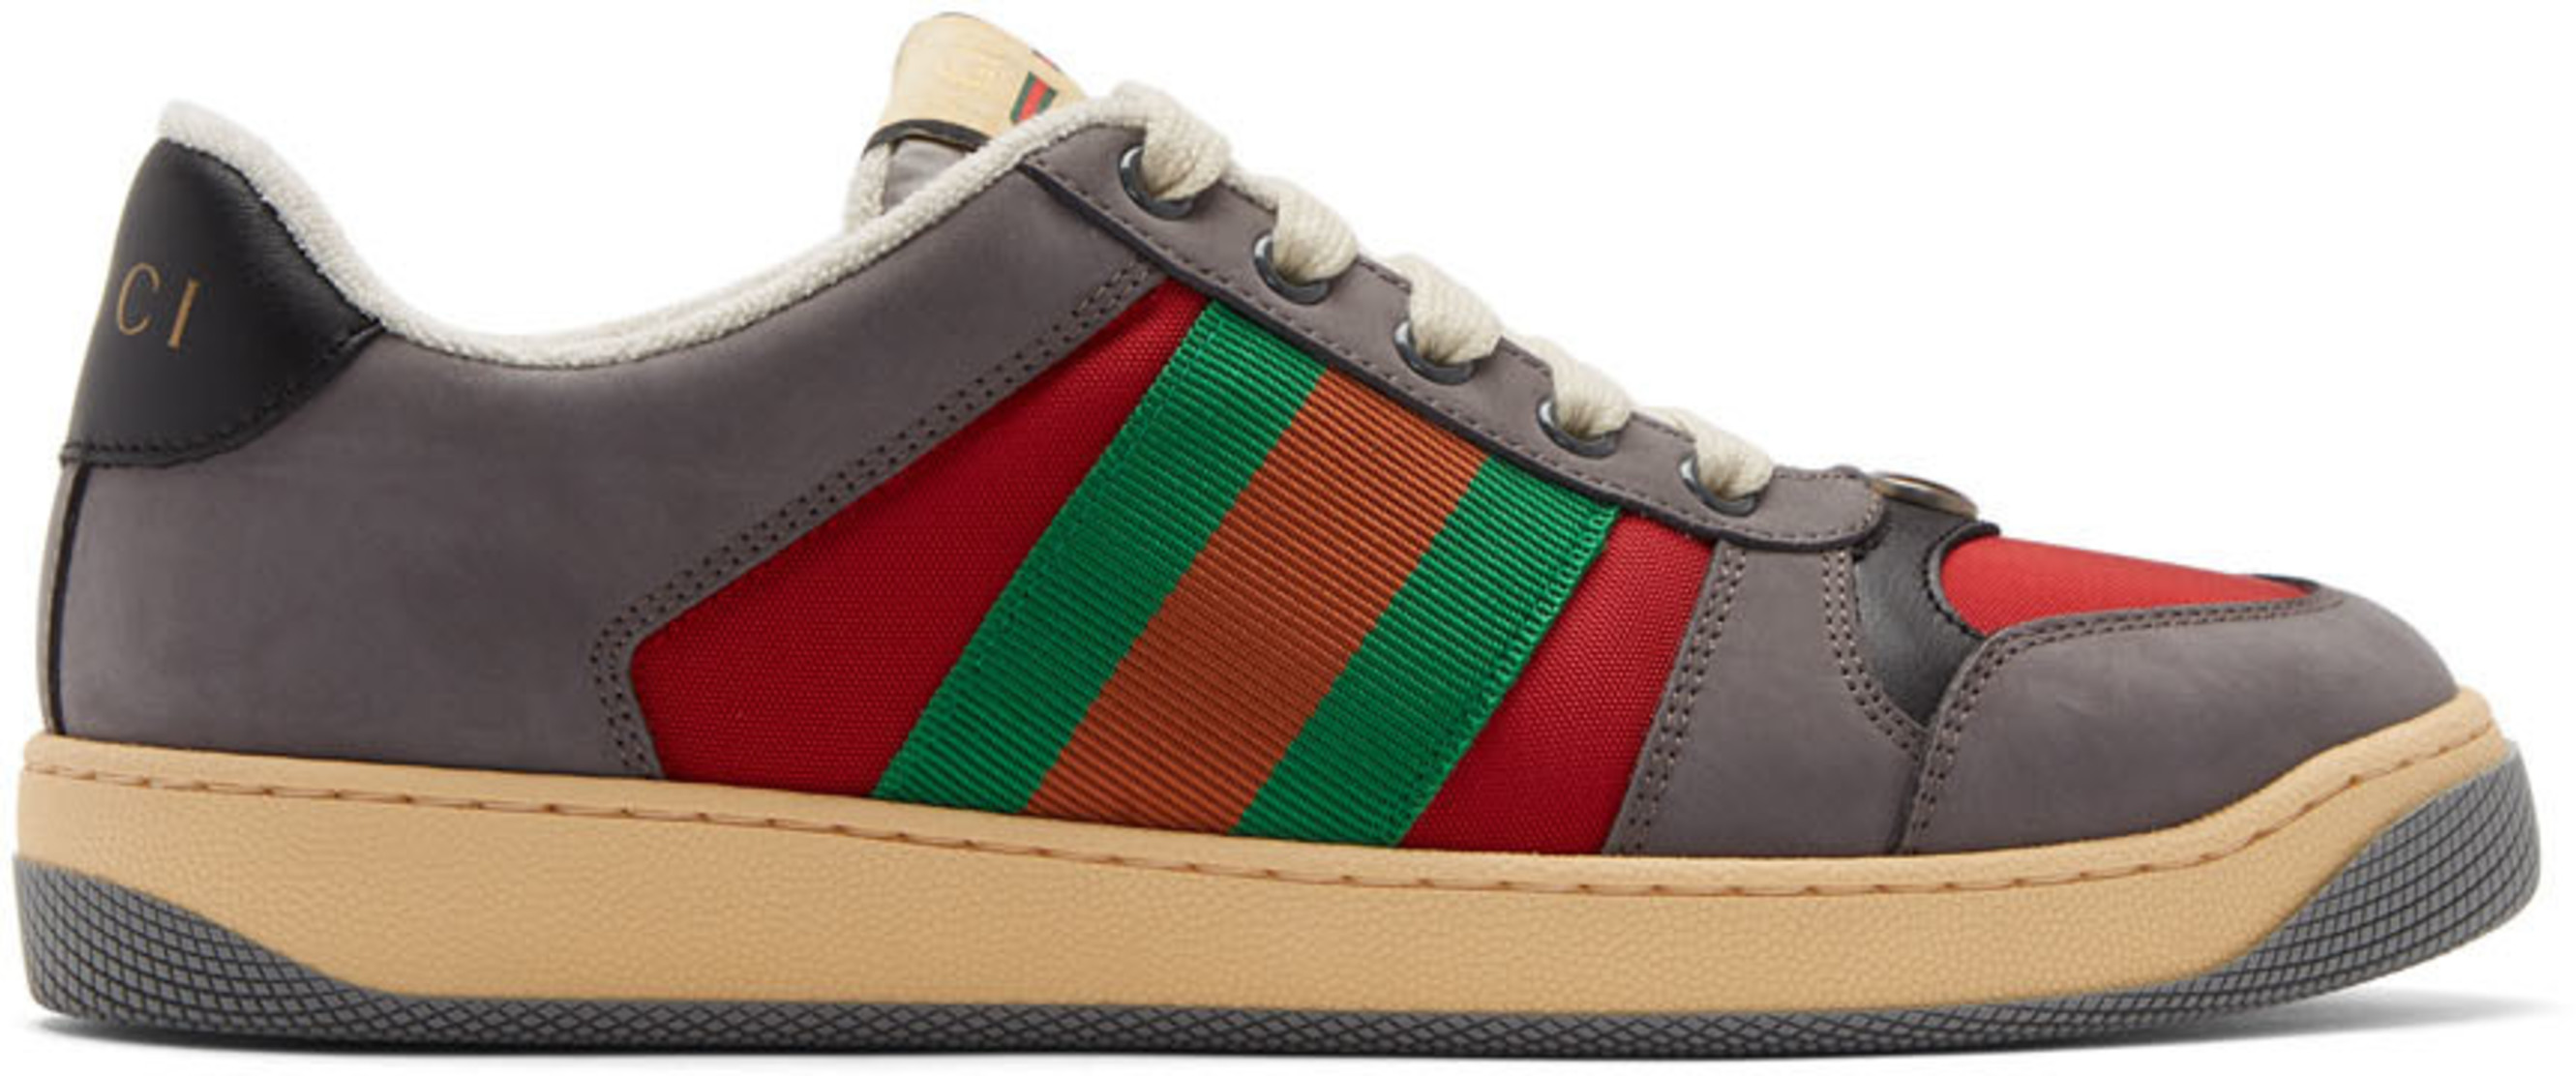 eee4dce84a0 Gucci sneakers for Men | SSENSE